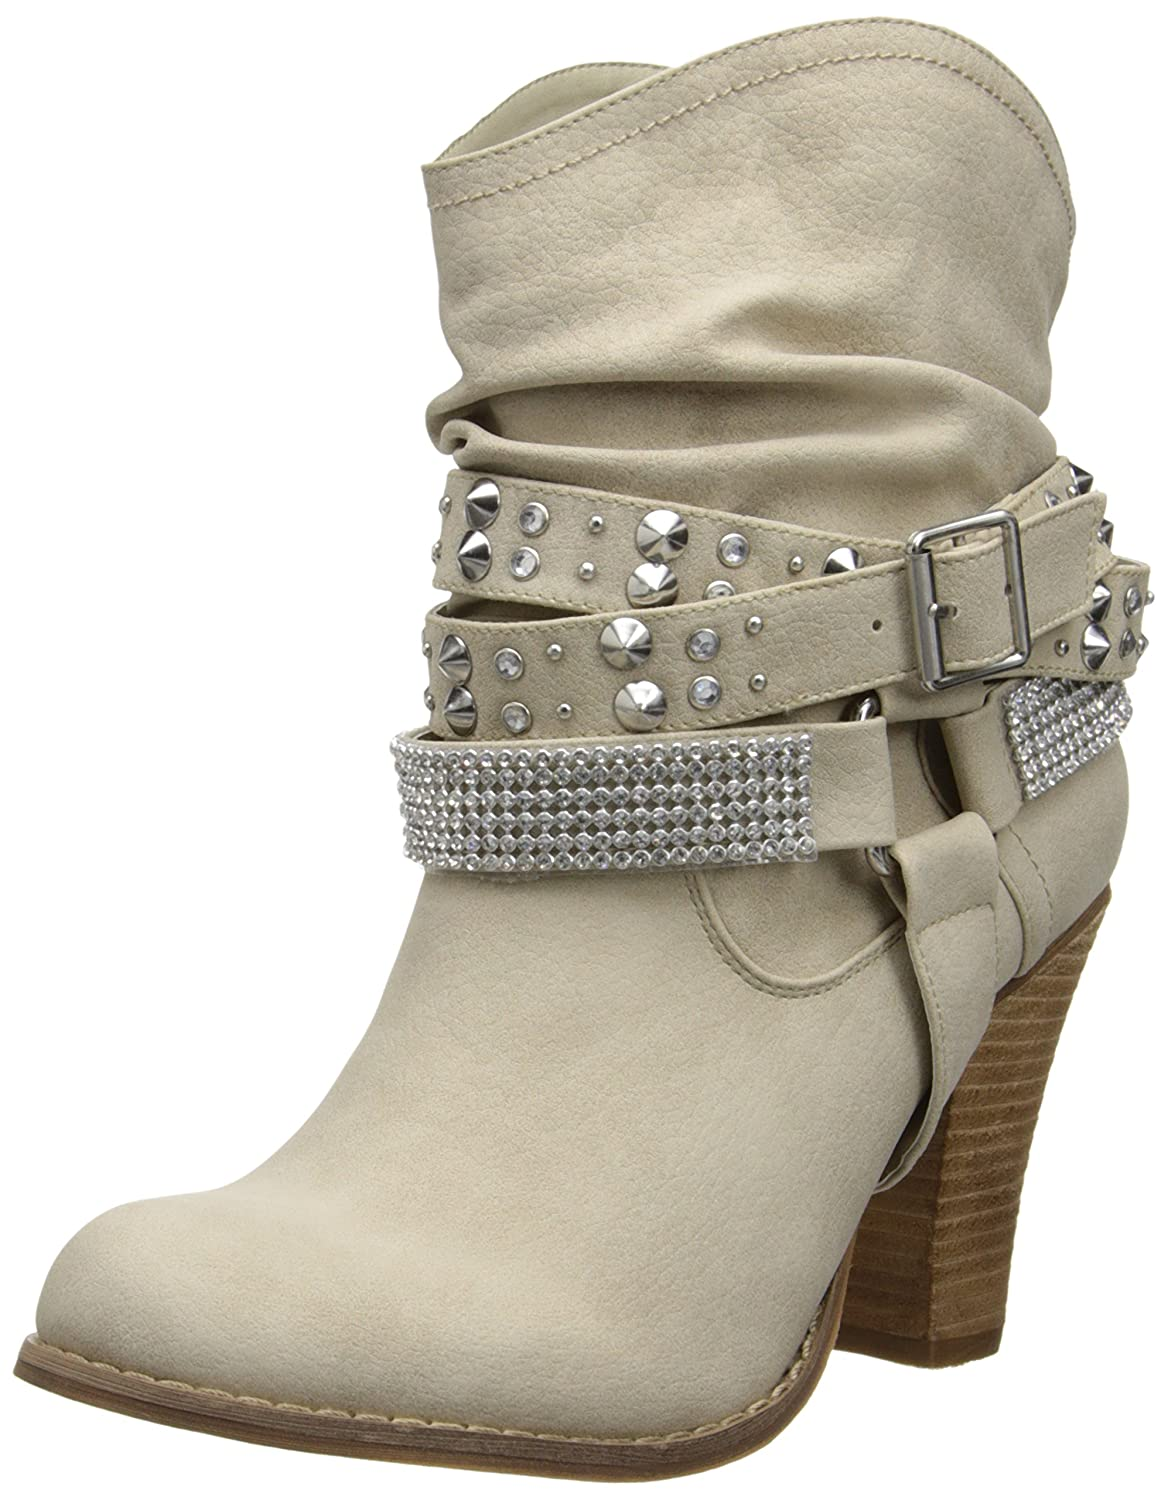 Not Rated Women's Double Dip Harness Boot B00JH39ESK 6 B(M) US|Cream